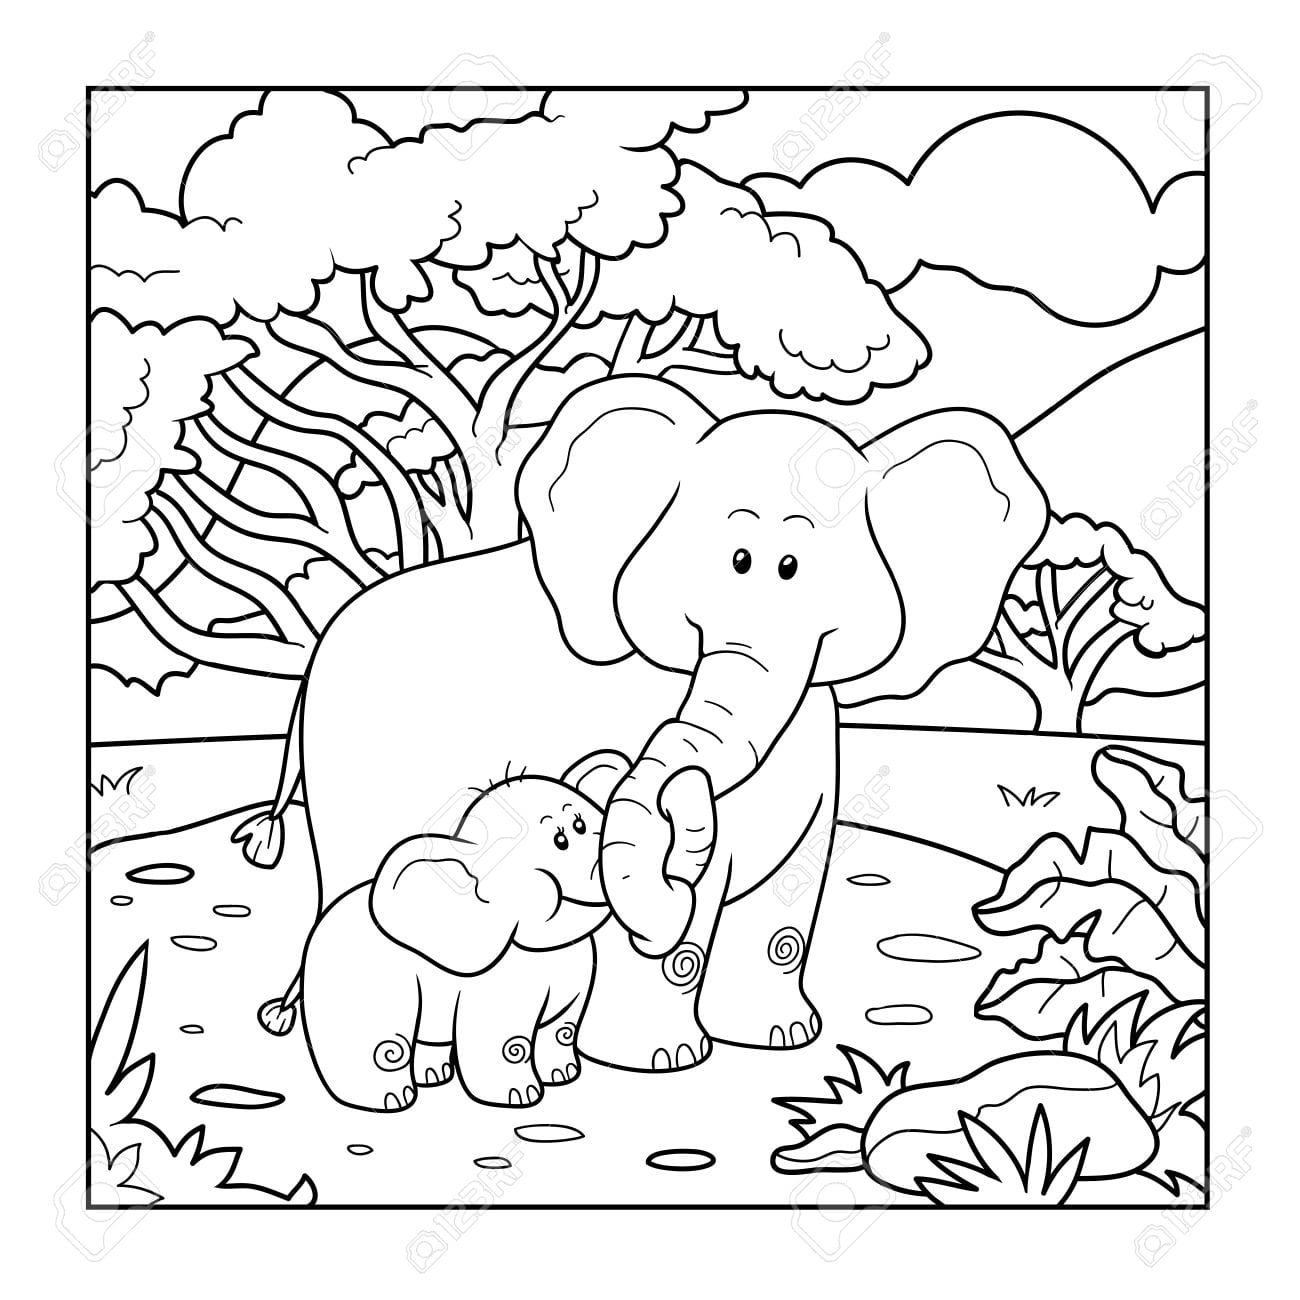 Best Colorings For Kids Pages Children Coloring Books Book App